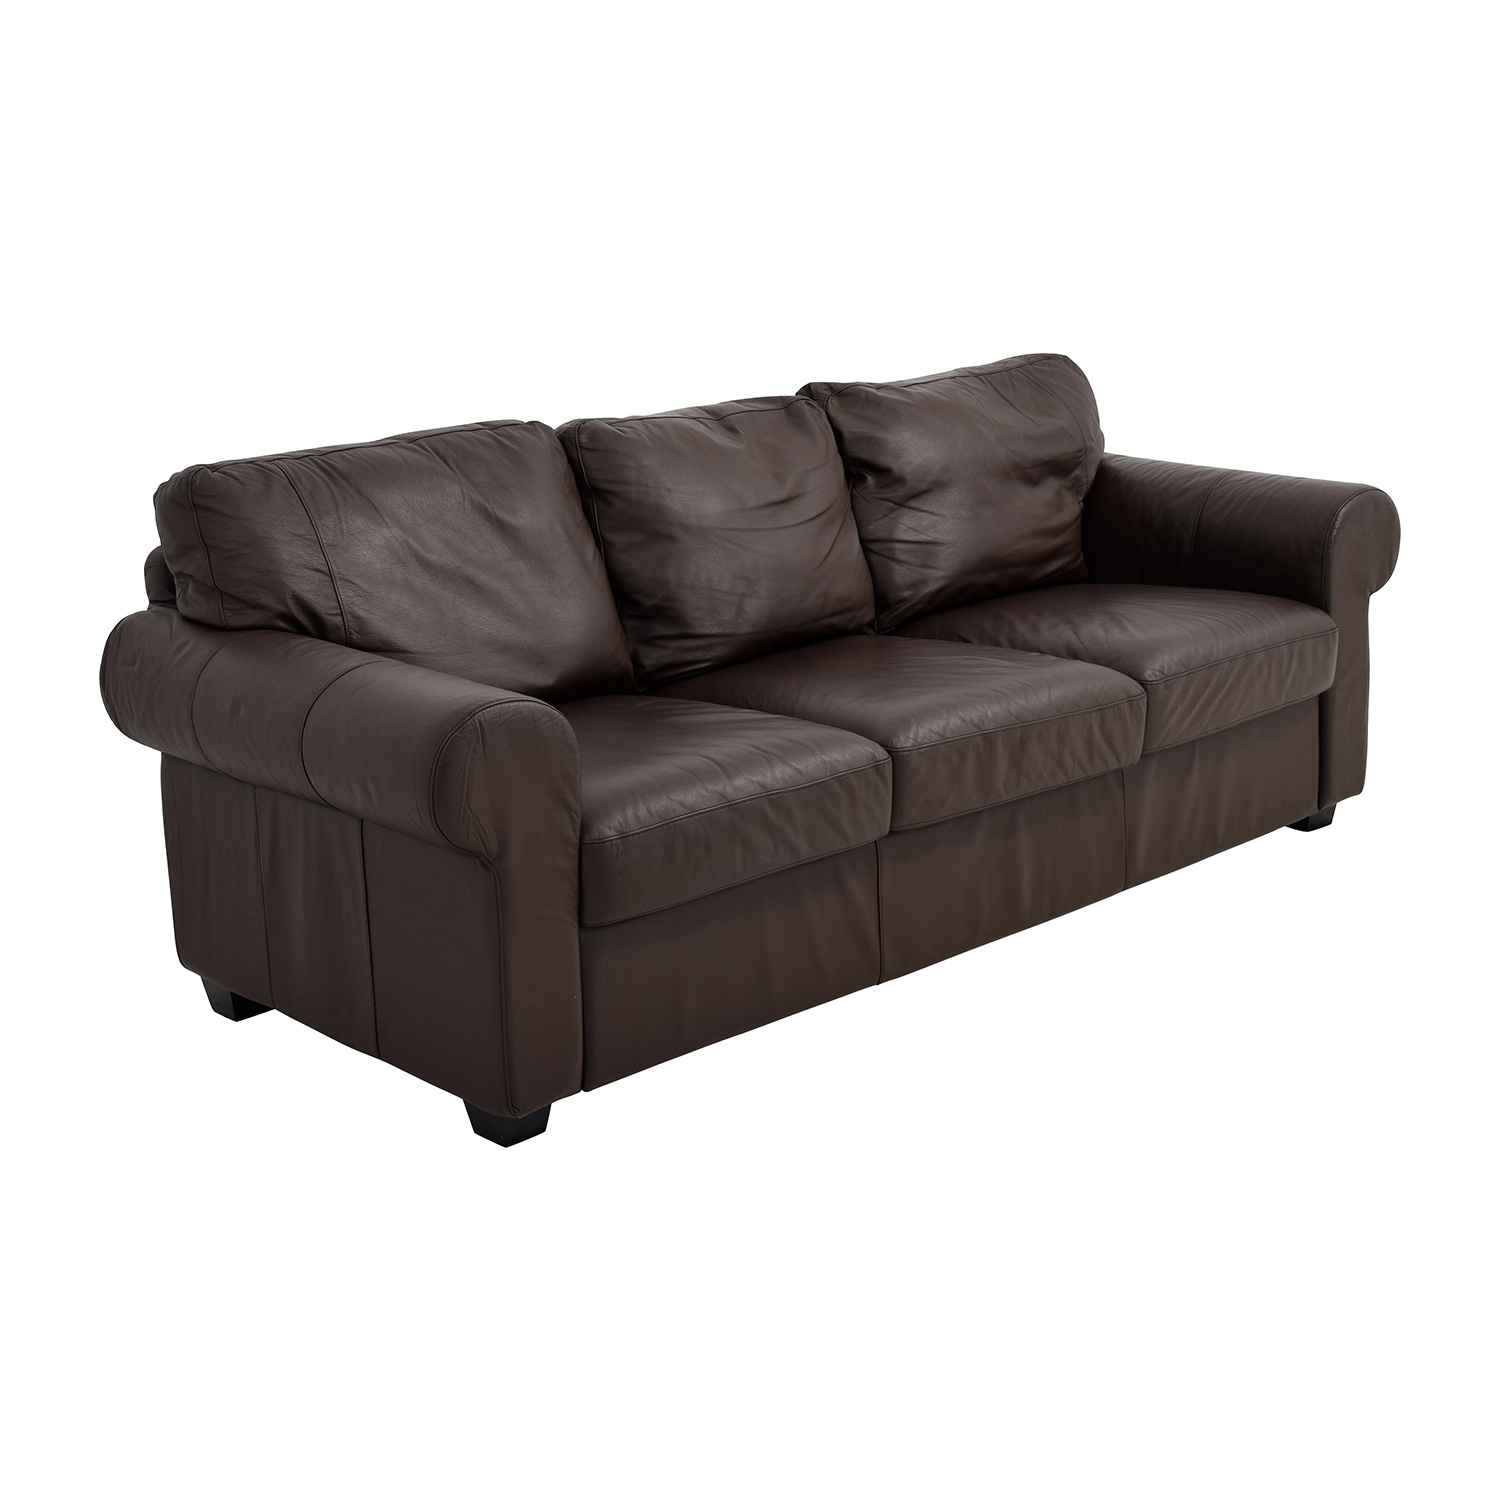 62 off ikea ikea dark brown three cushion leather couch for Cushions for leather sofas